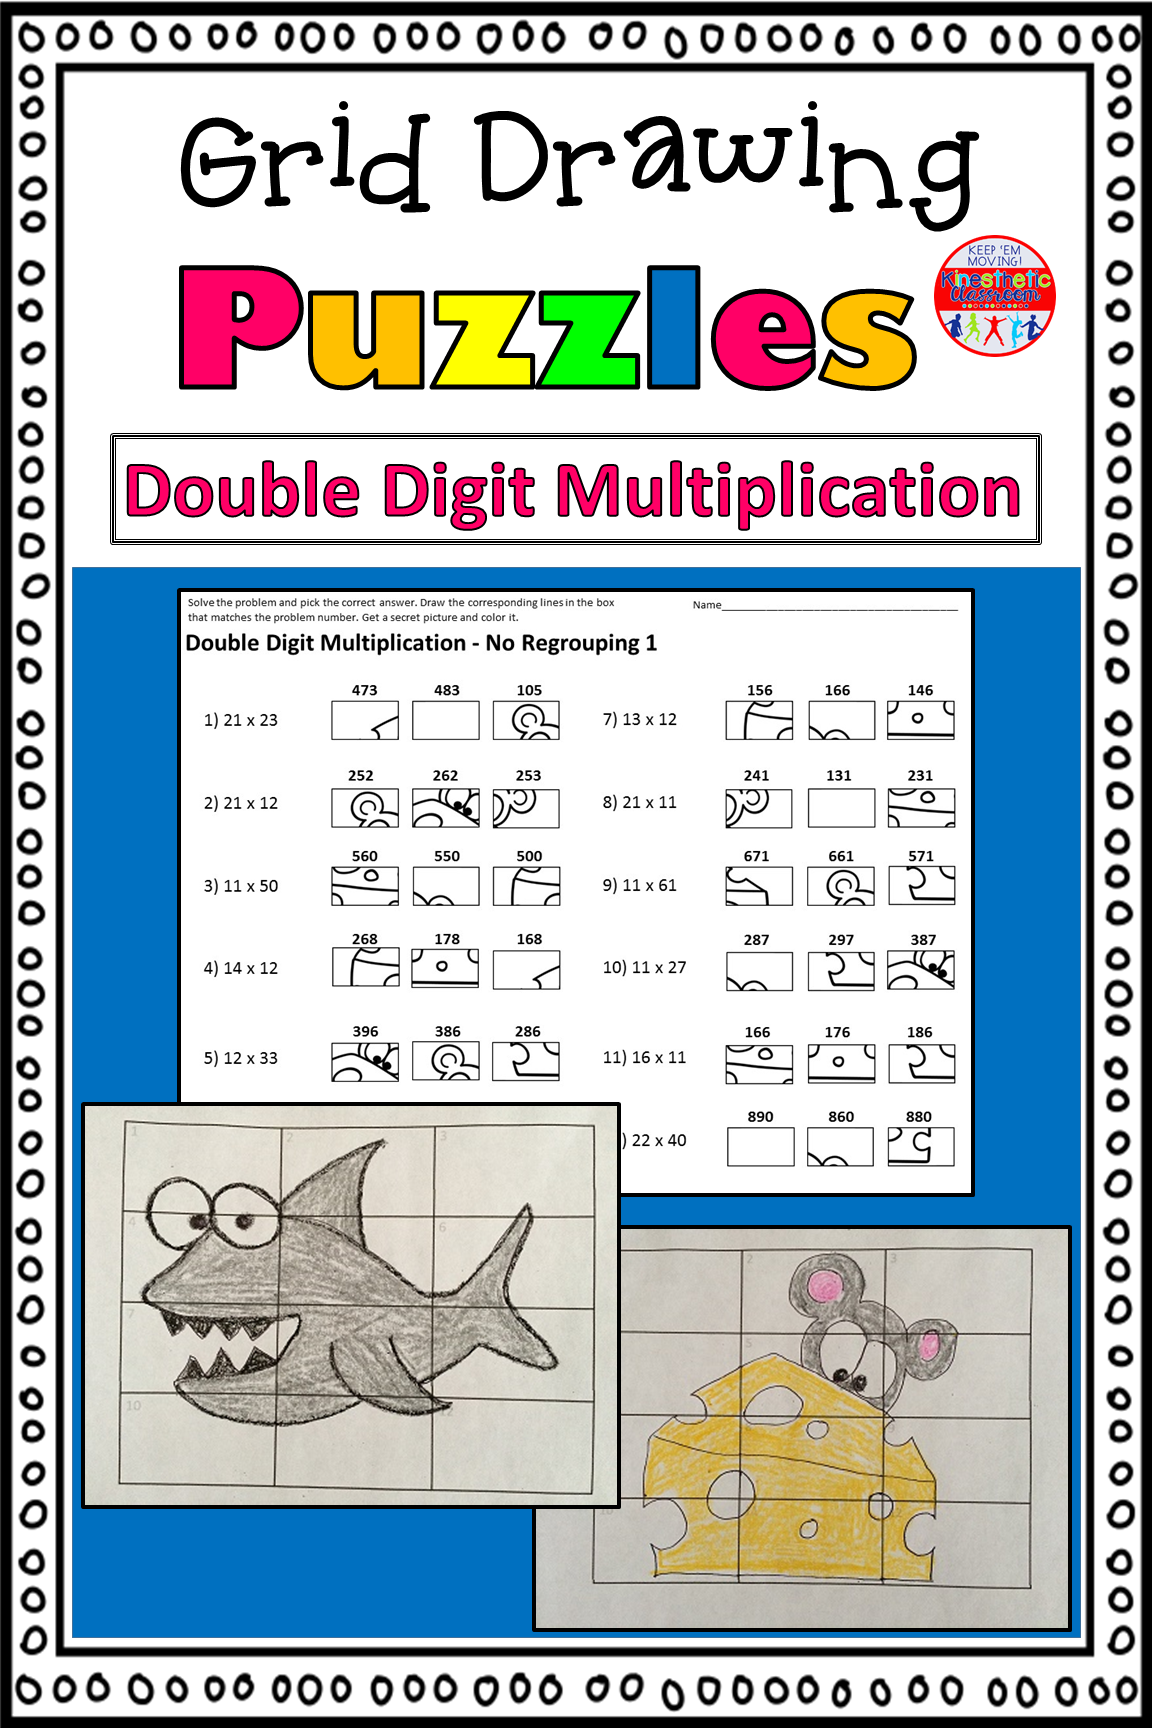 Double Digit Multiplication Activity Grid Drawing Math